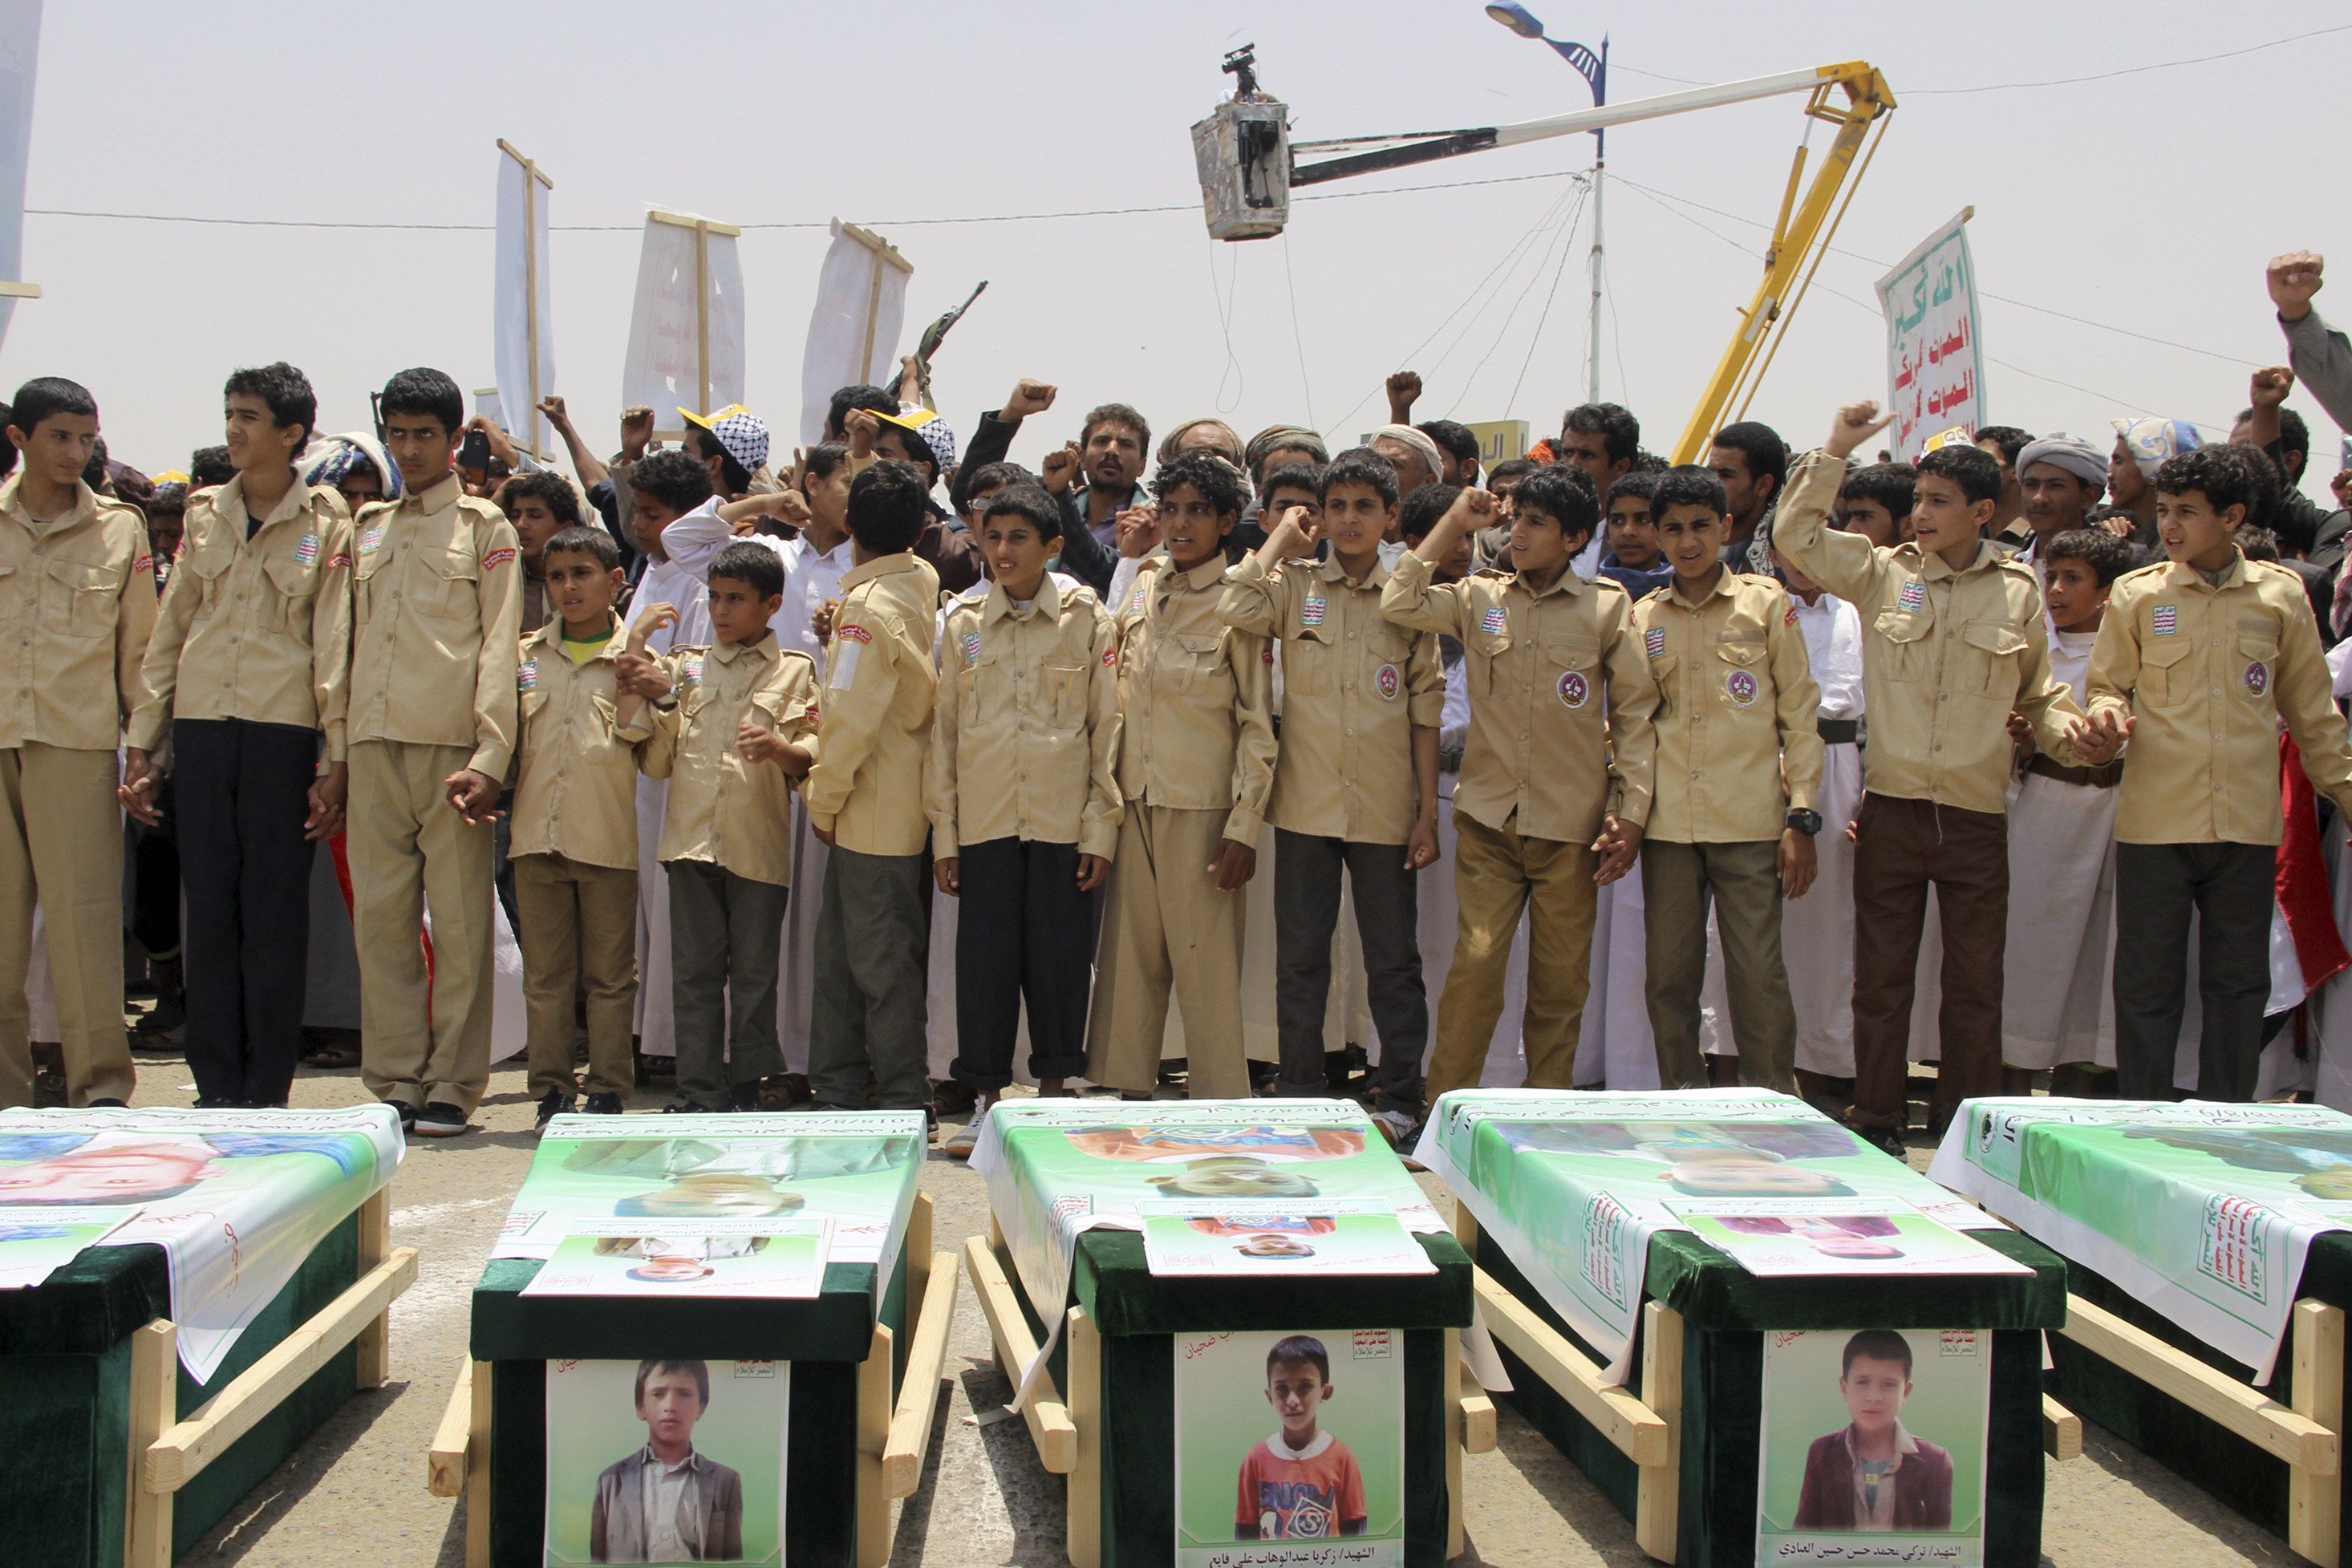 Yemeni children vent anger against Riyadh and Washington on August 13, 2018 as they take part in a mass funeral. (STRINGER/AFP via Getty Images)